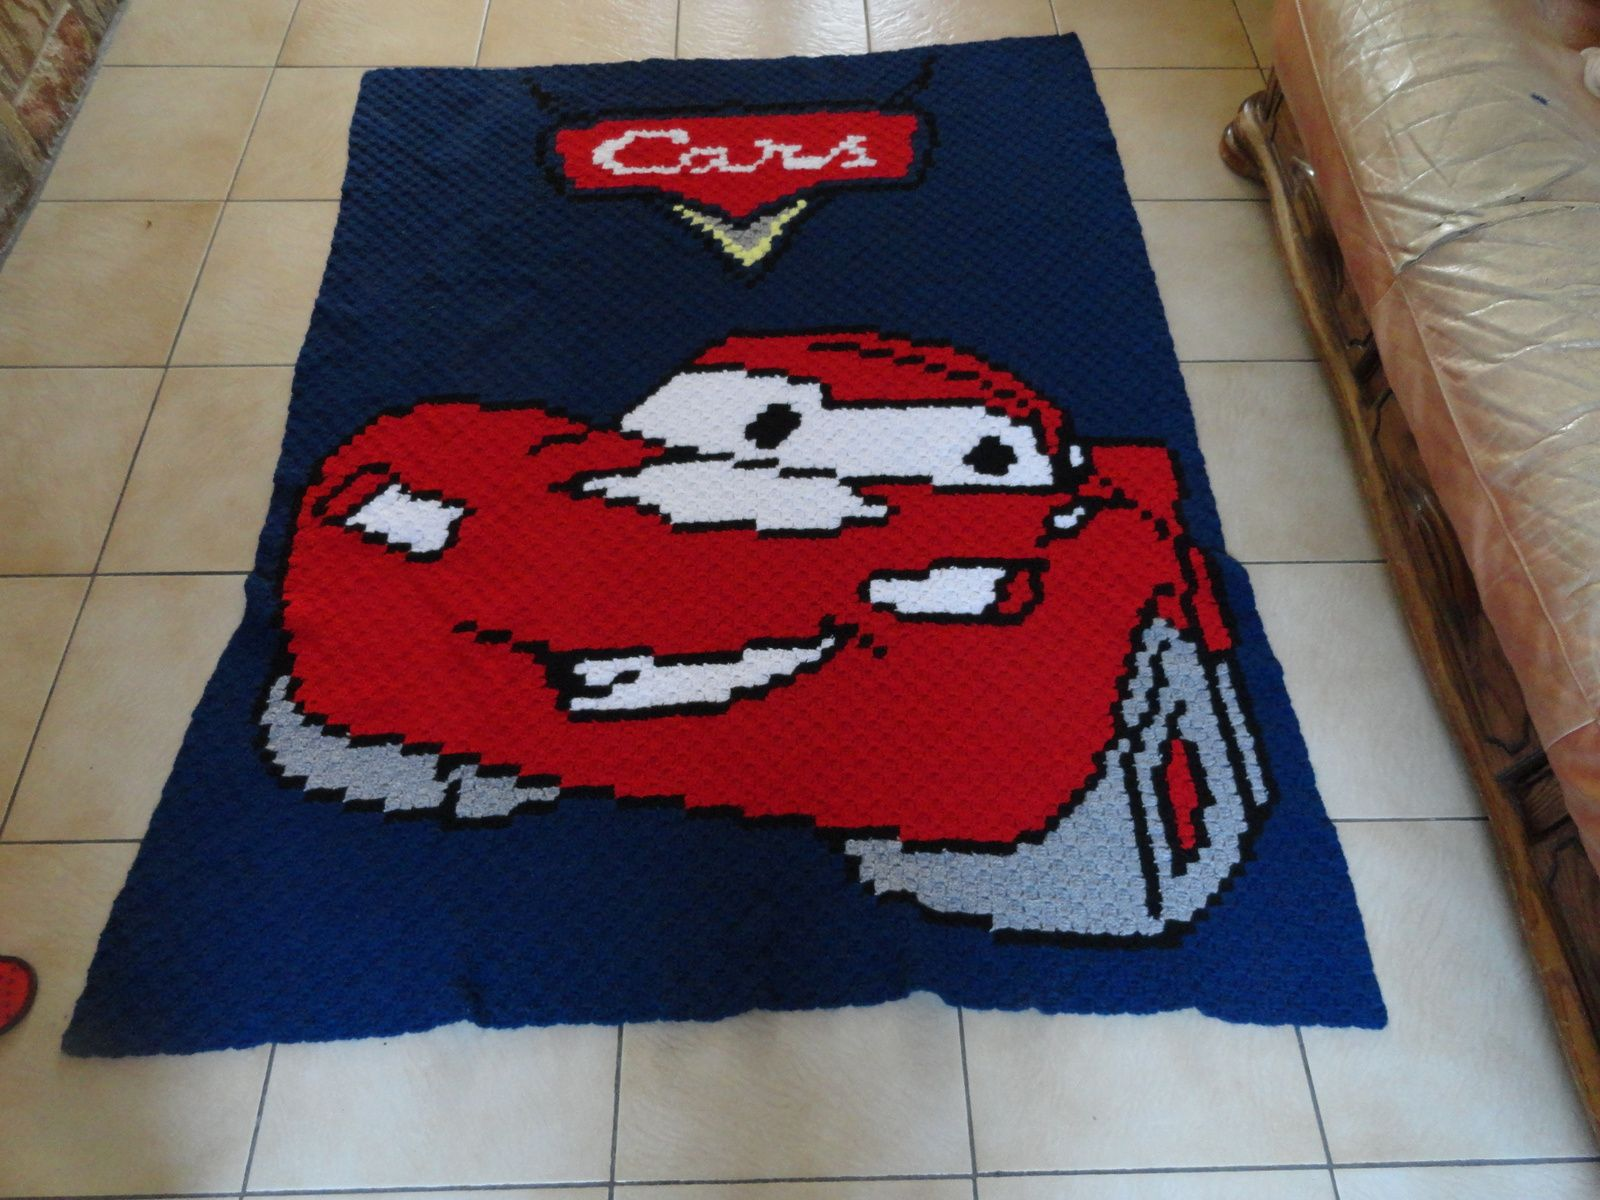 couverture au crochet c2c ,cars